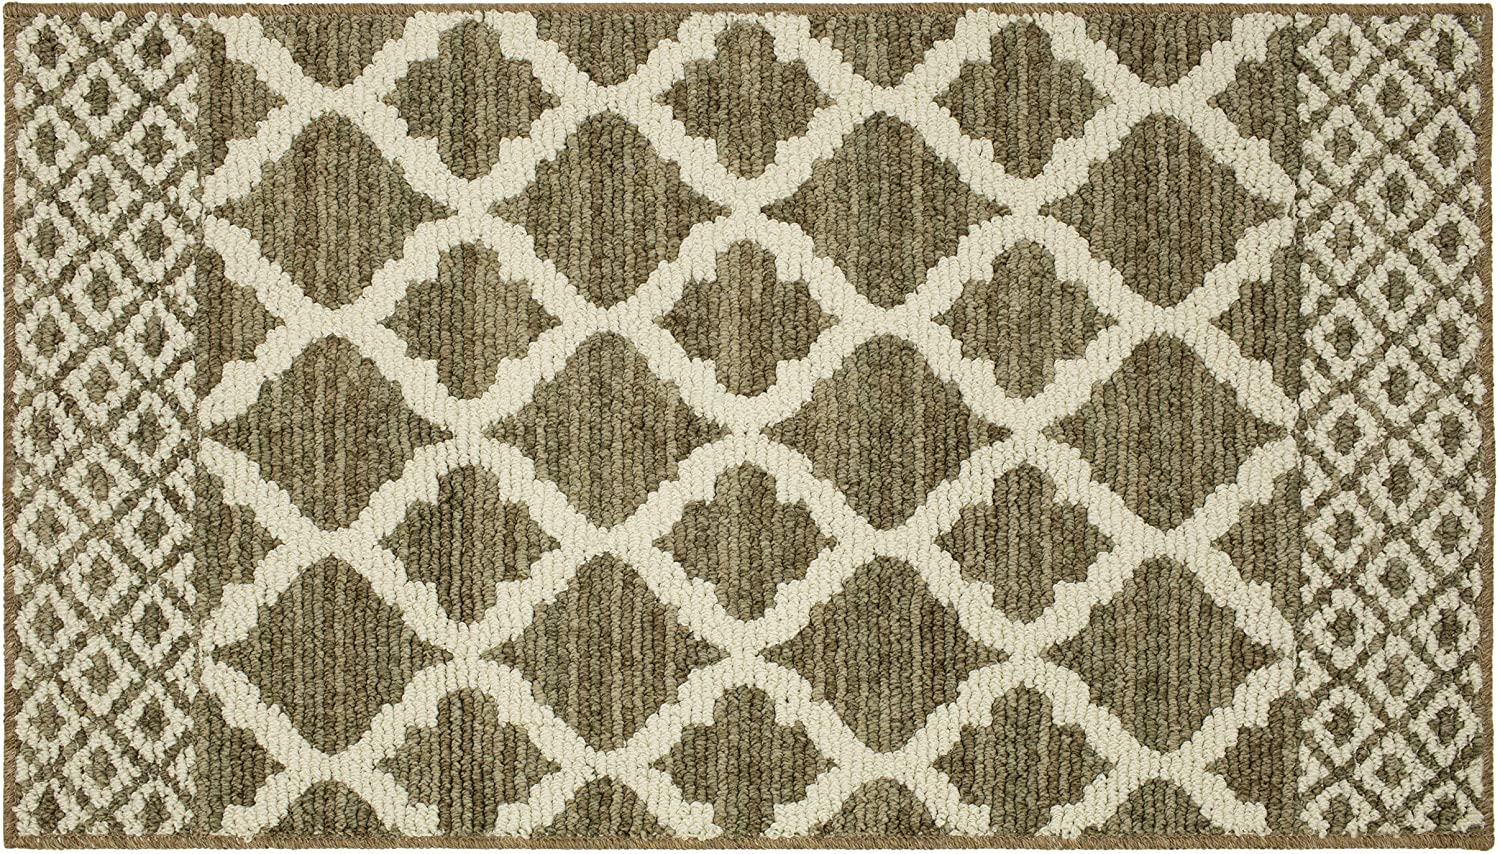 Amazon Com Mohawk Home Moroccan Lattice Dark Khaki Cream Area Rug 1 8x3 Furniture Decor